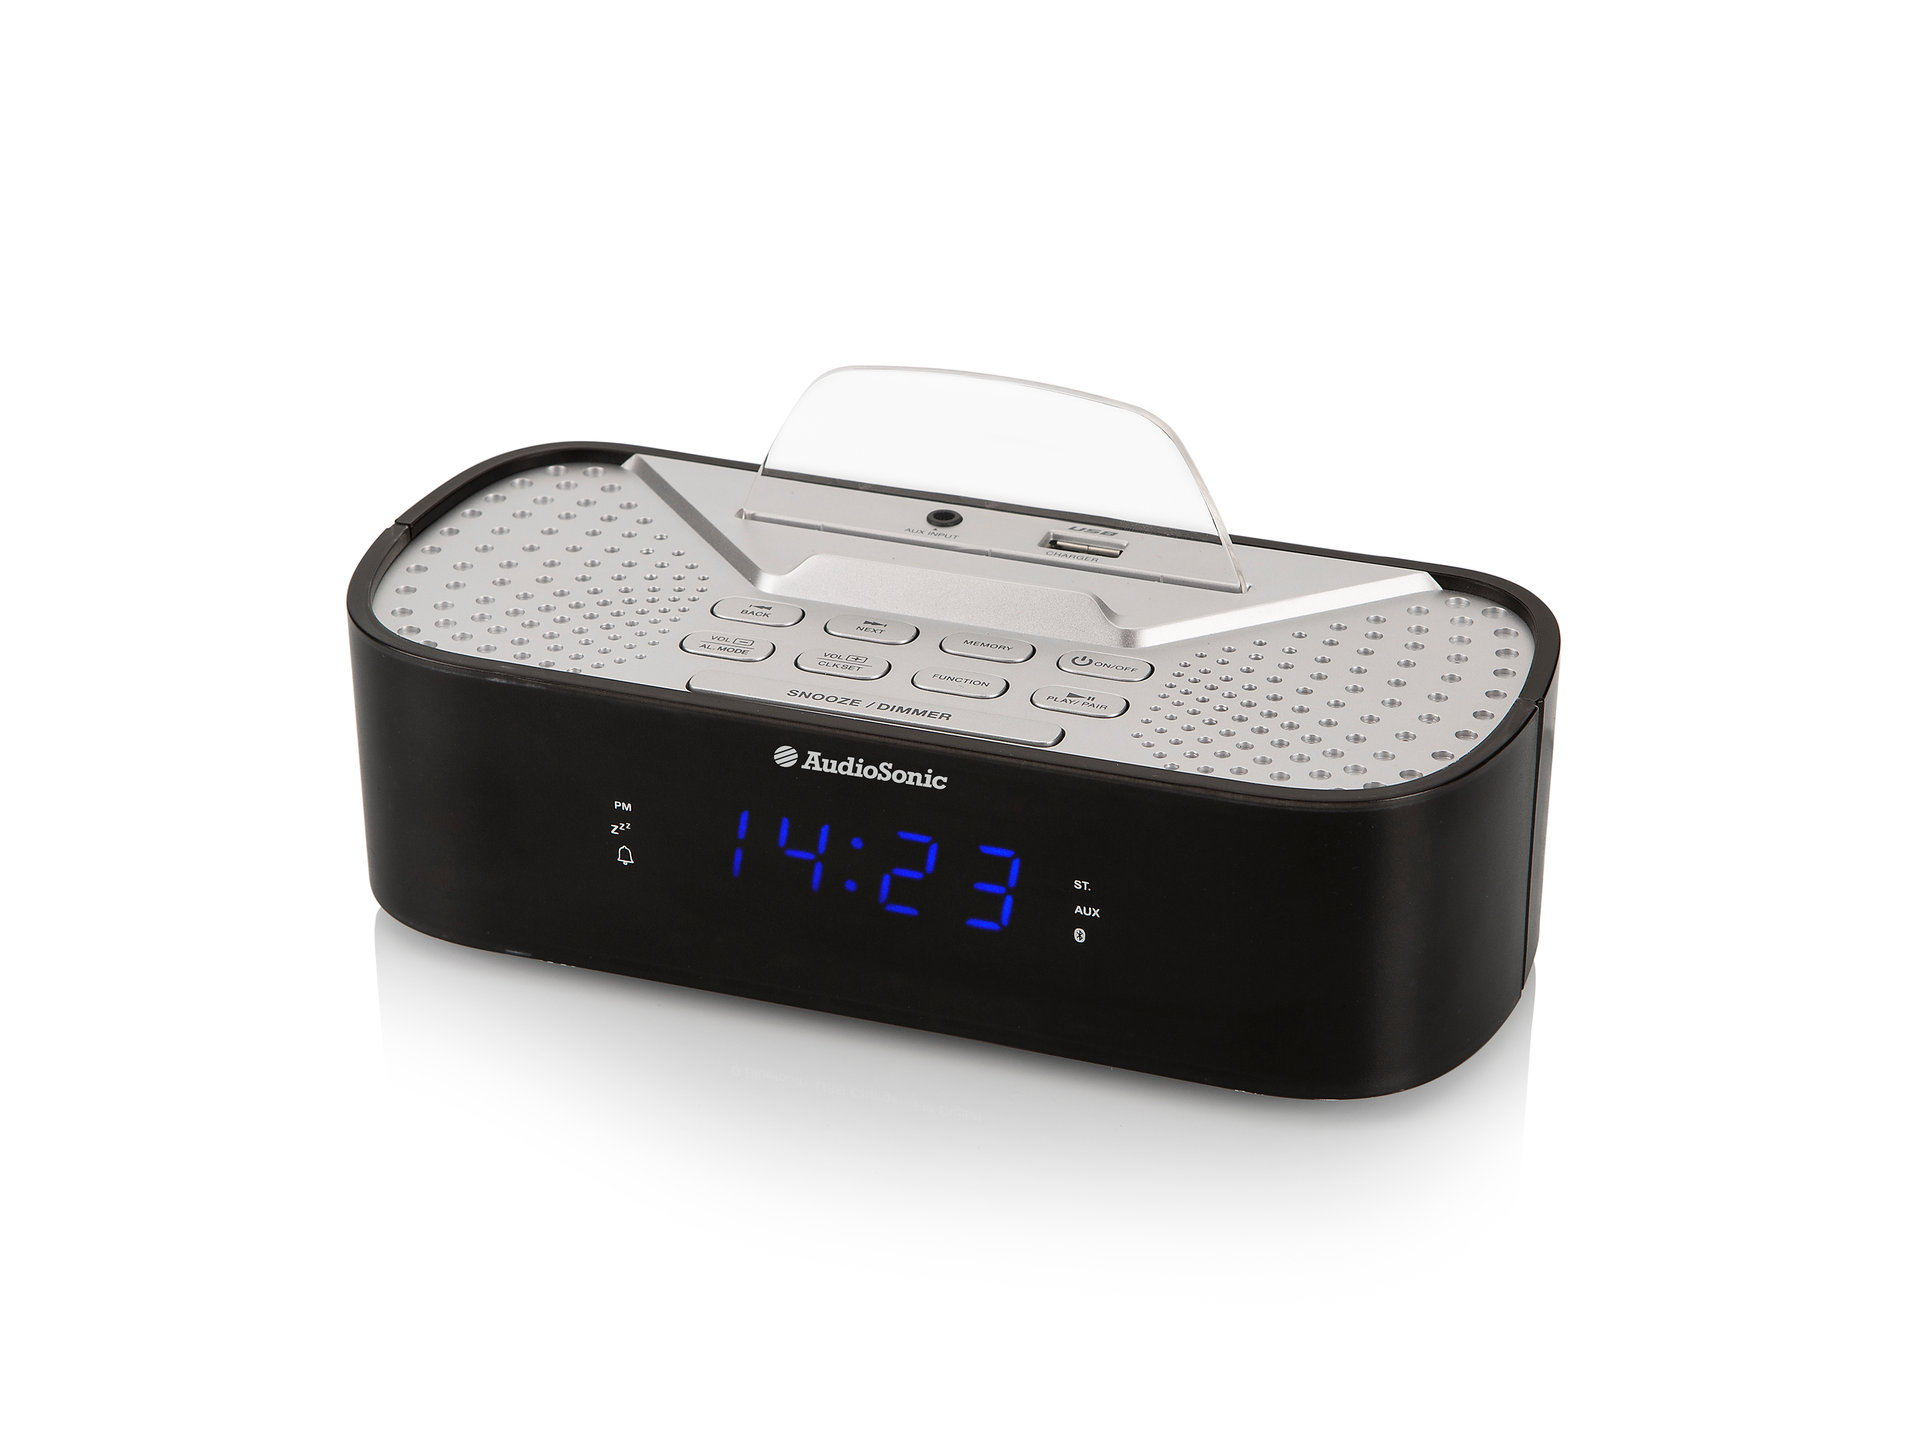 Audiosonic CL-1463 Rádiobudík, Bluetooth, USB